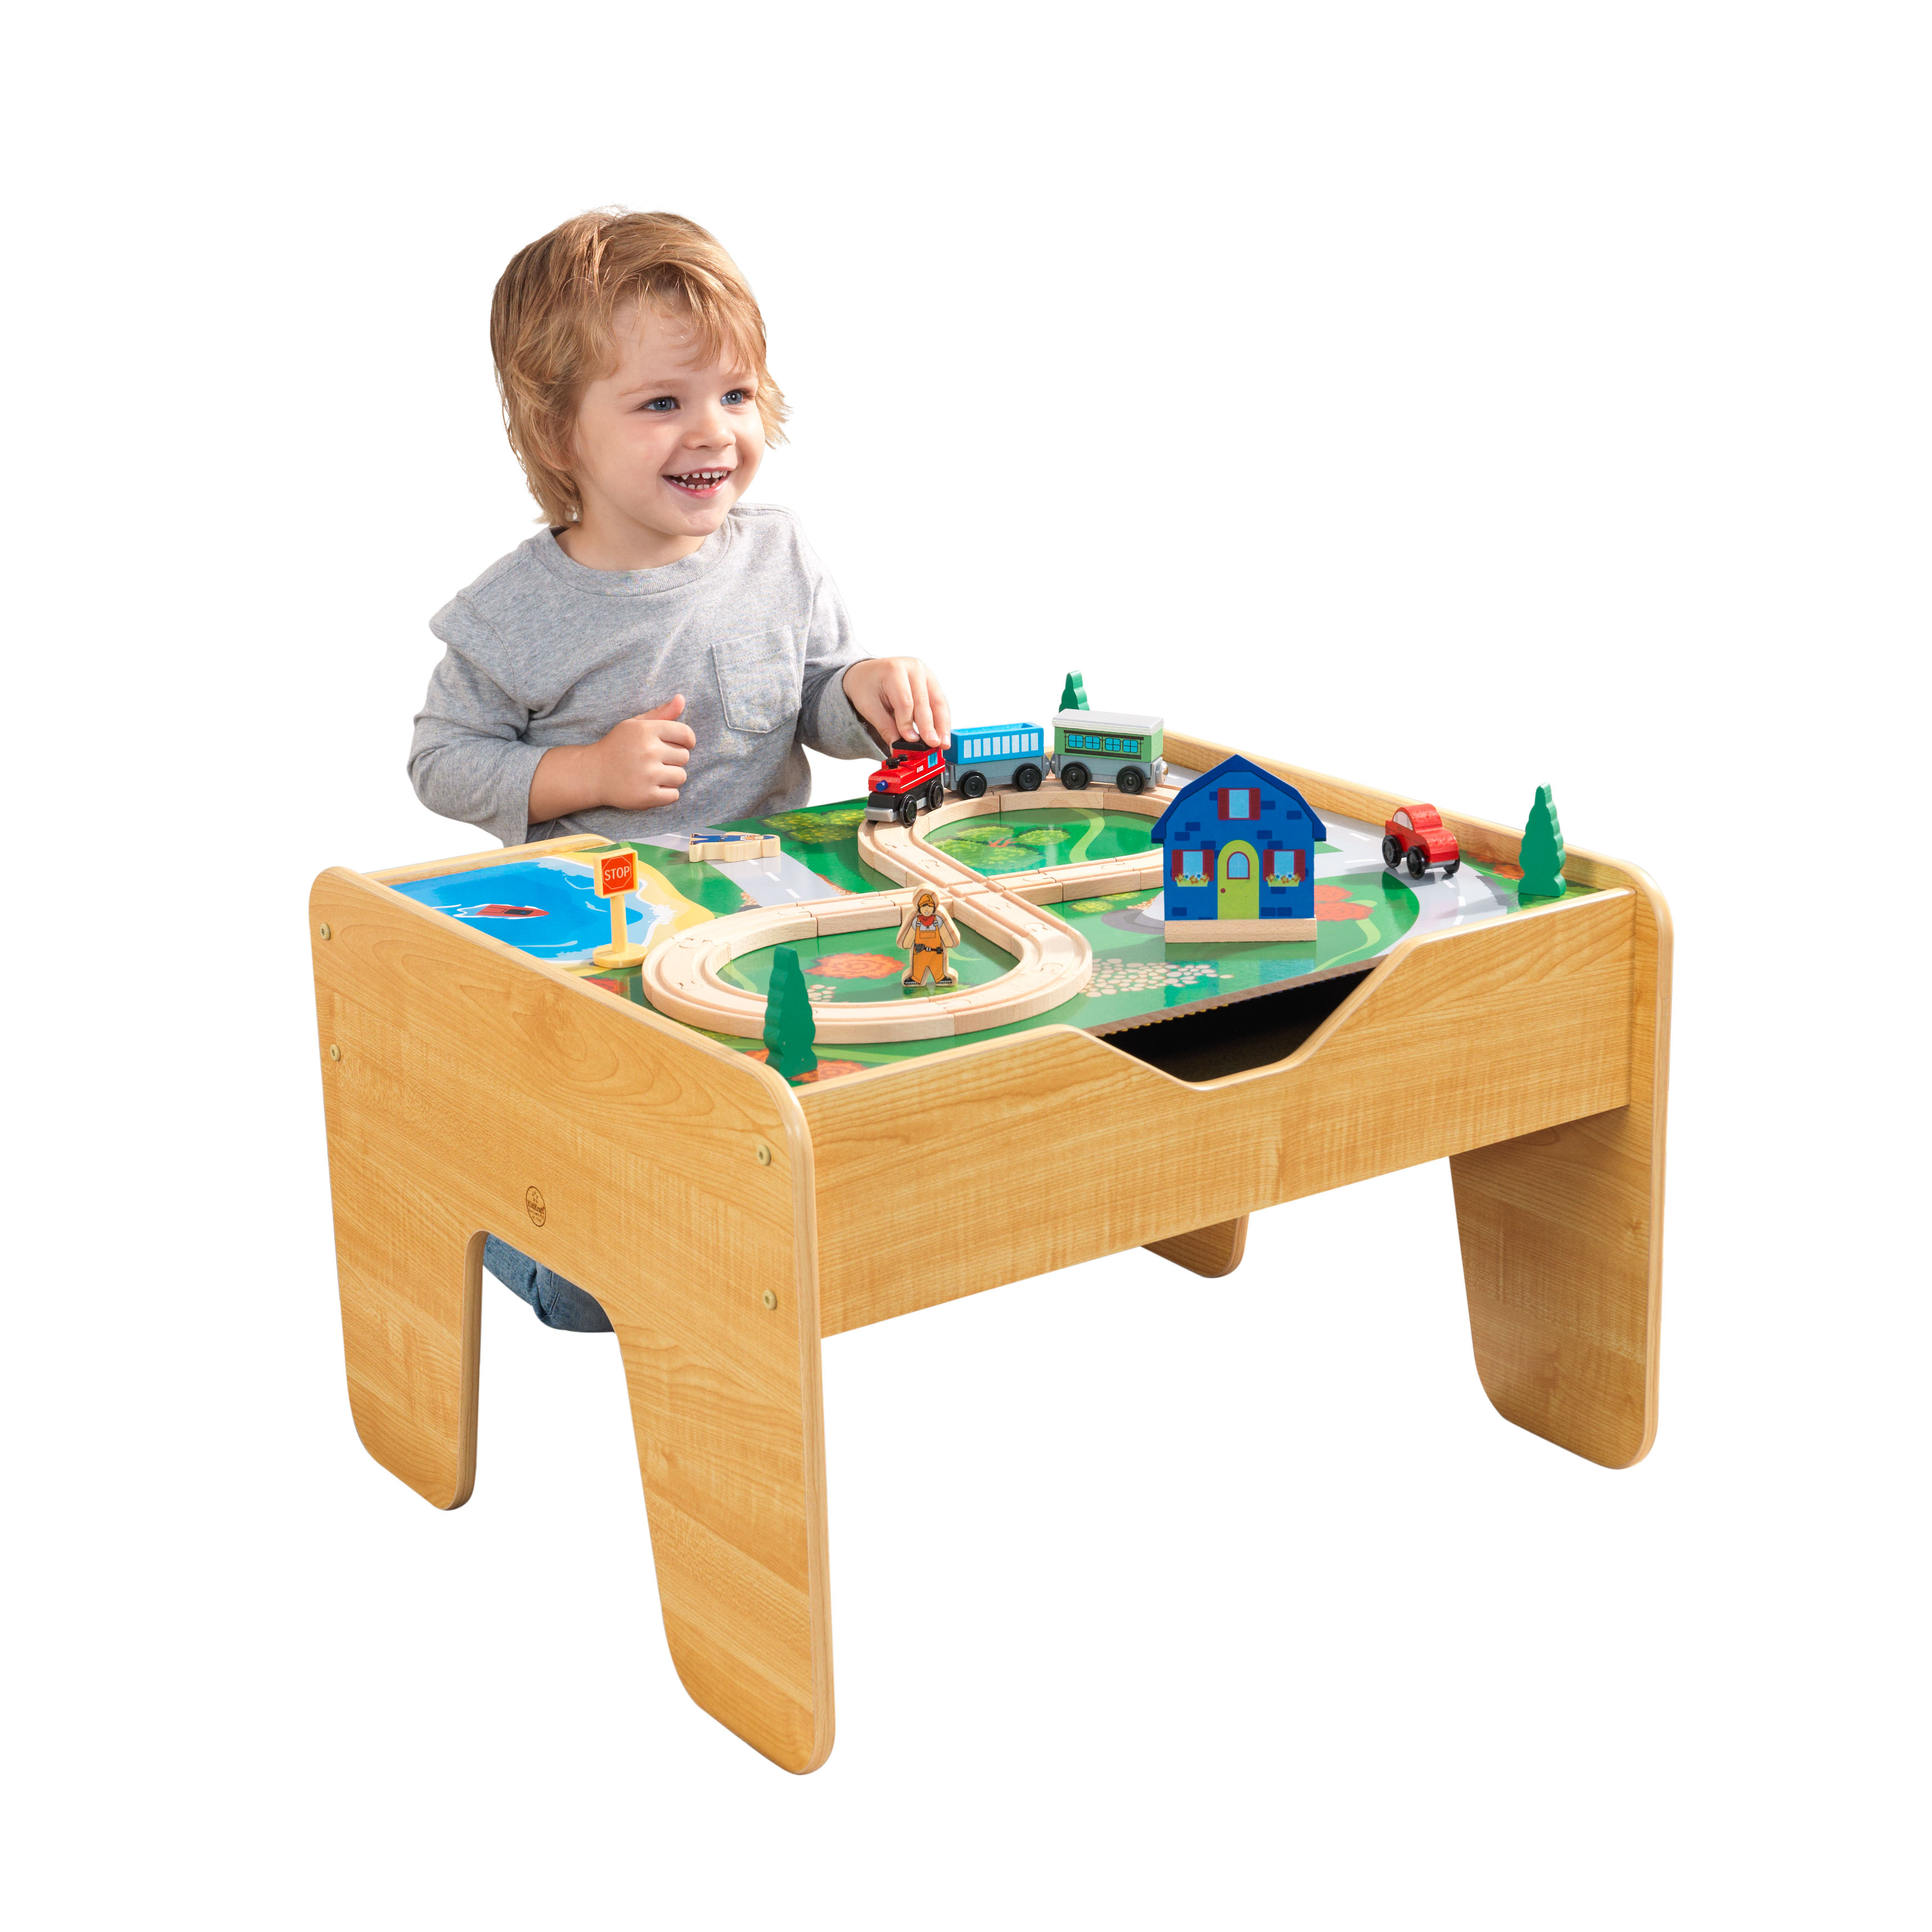 KidKraft 2-in-1 Activity Table With Board - Natural with 230 accessories included